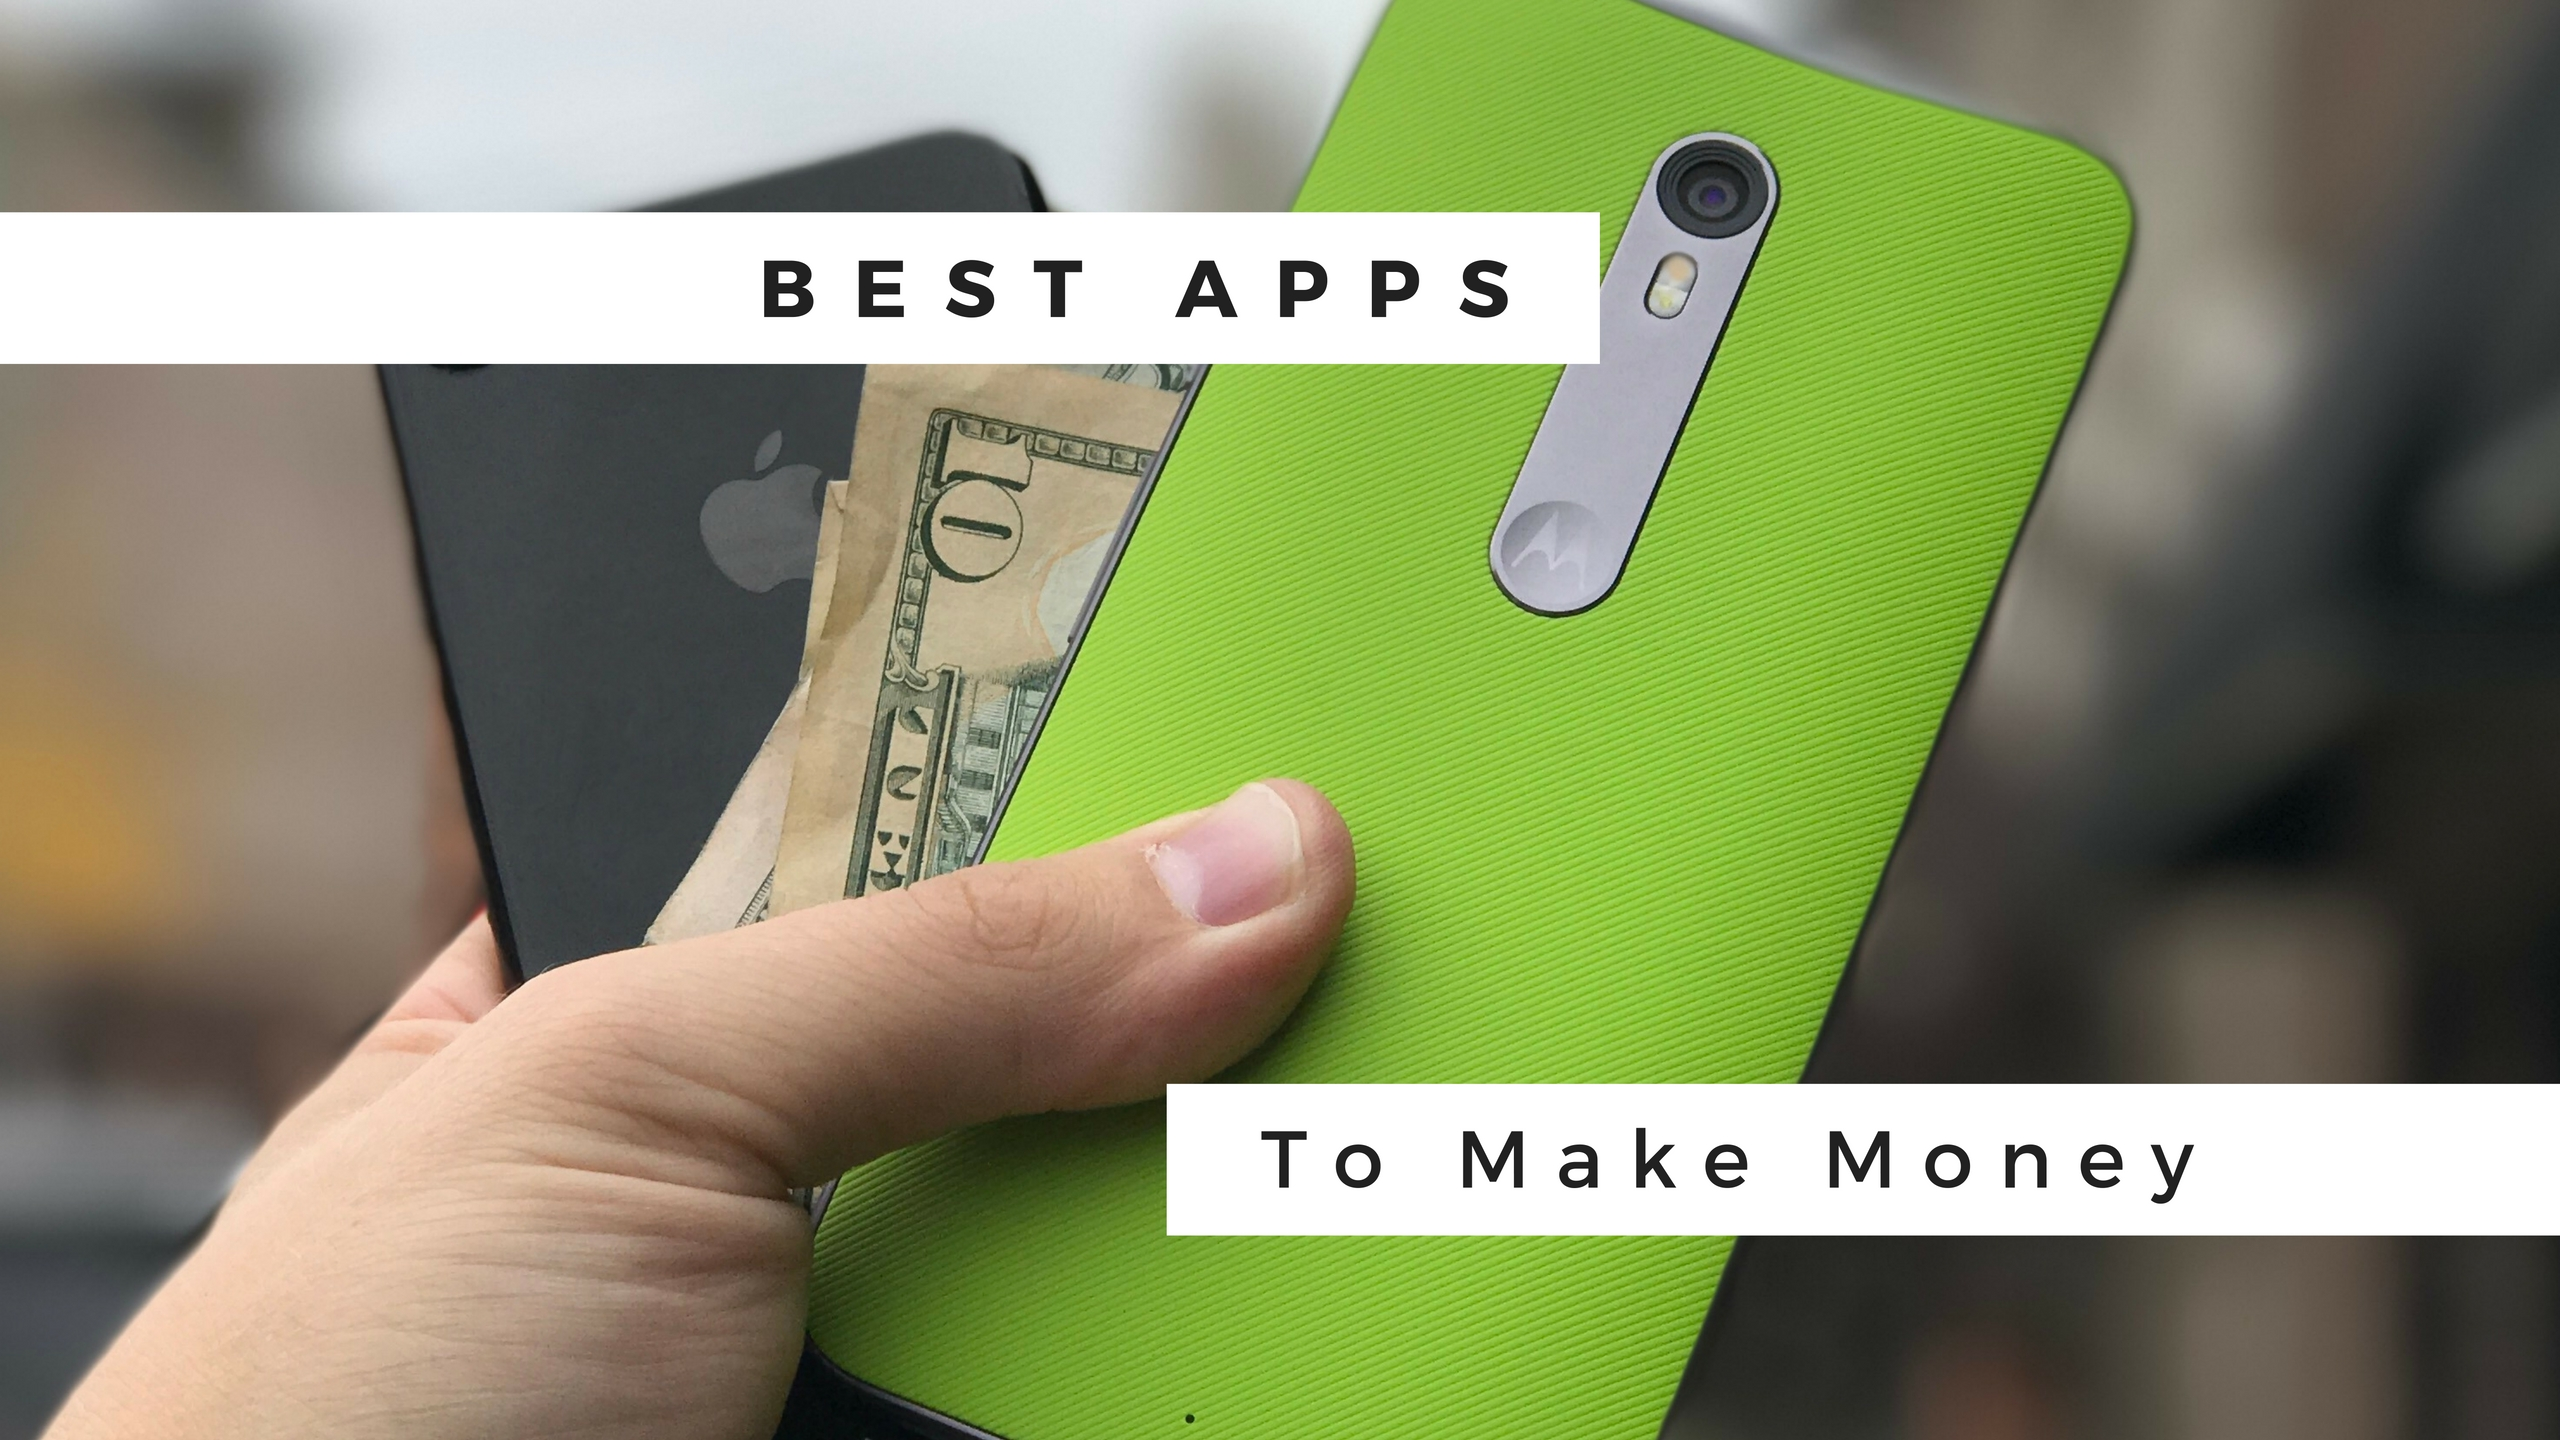 Top 5 apps to earn money in india